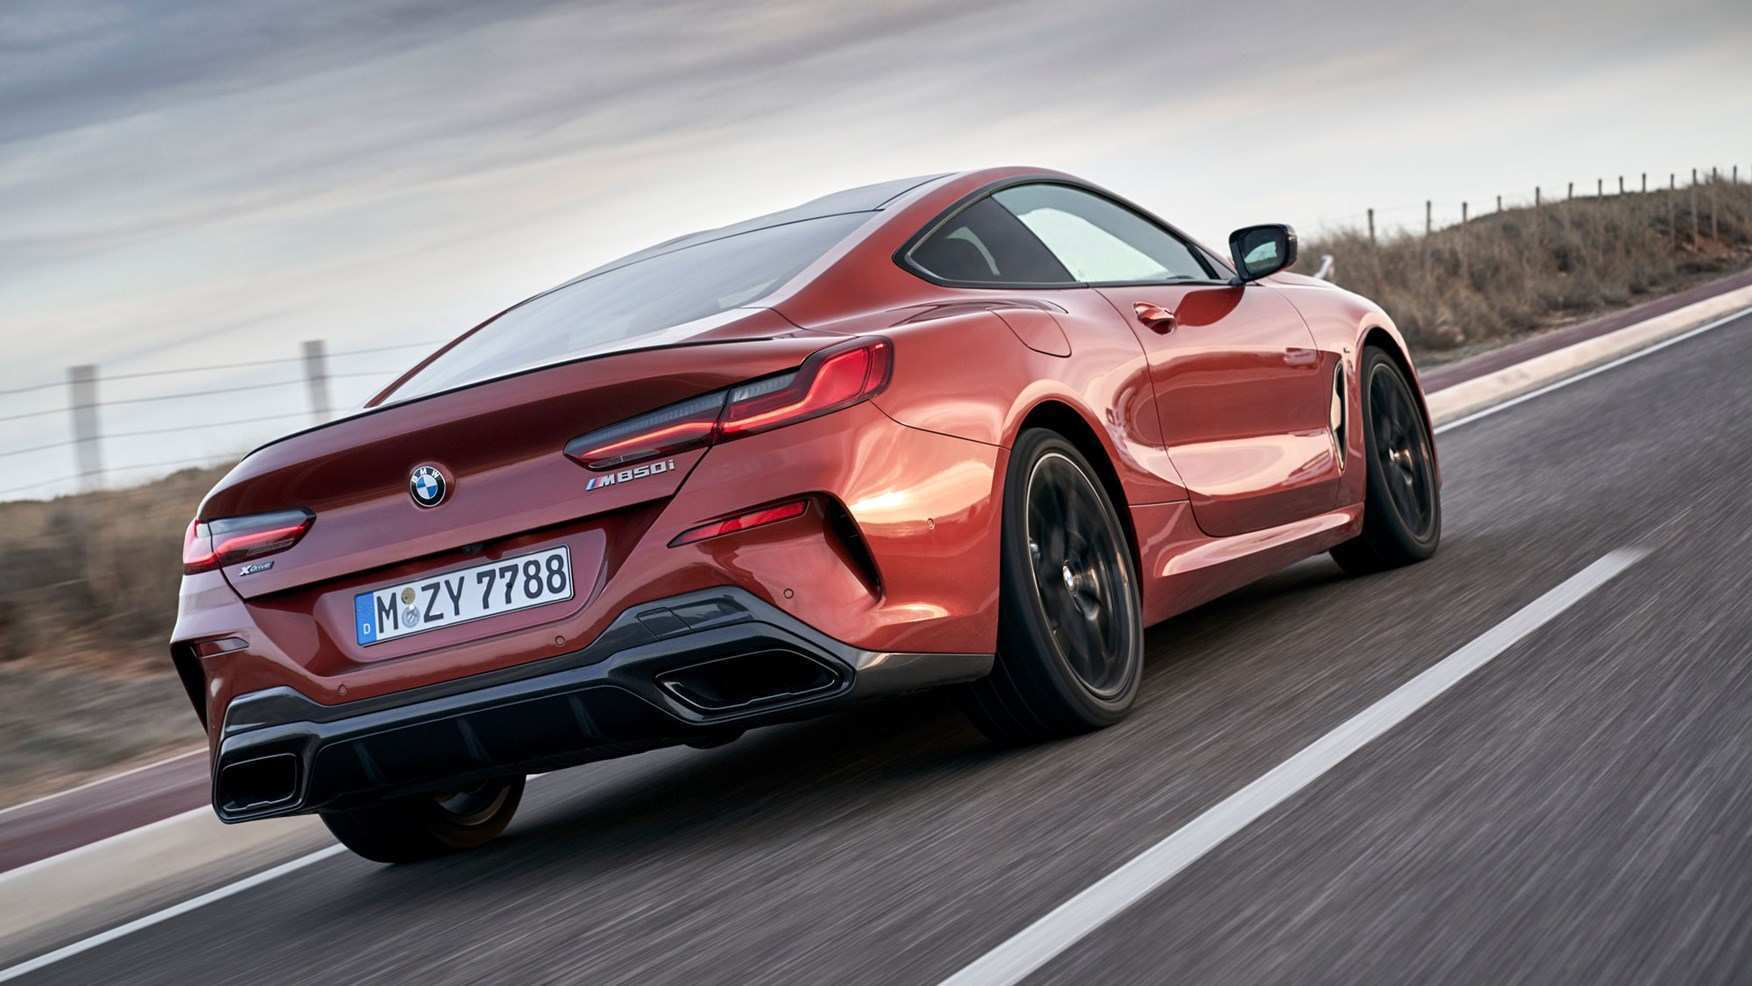 74 All New 2019 Bmw 8 Series Review Images